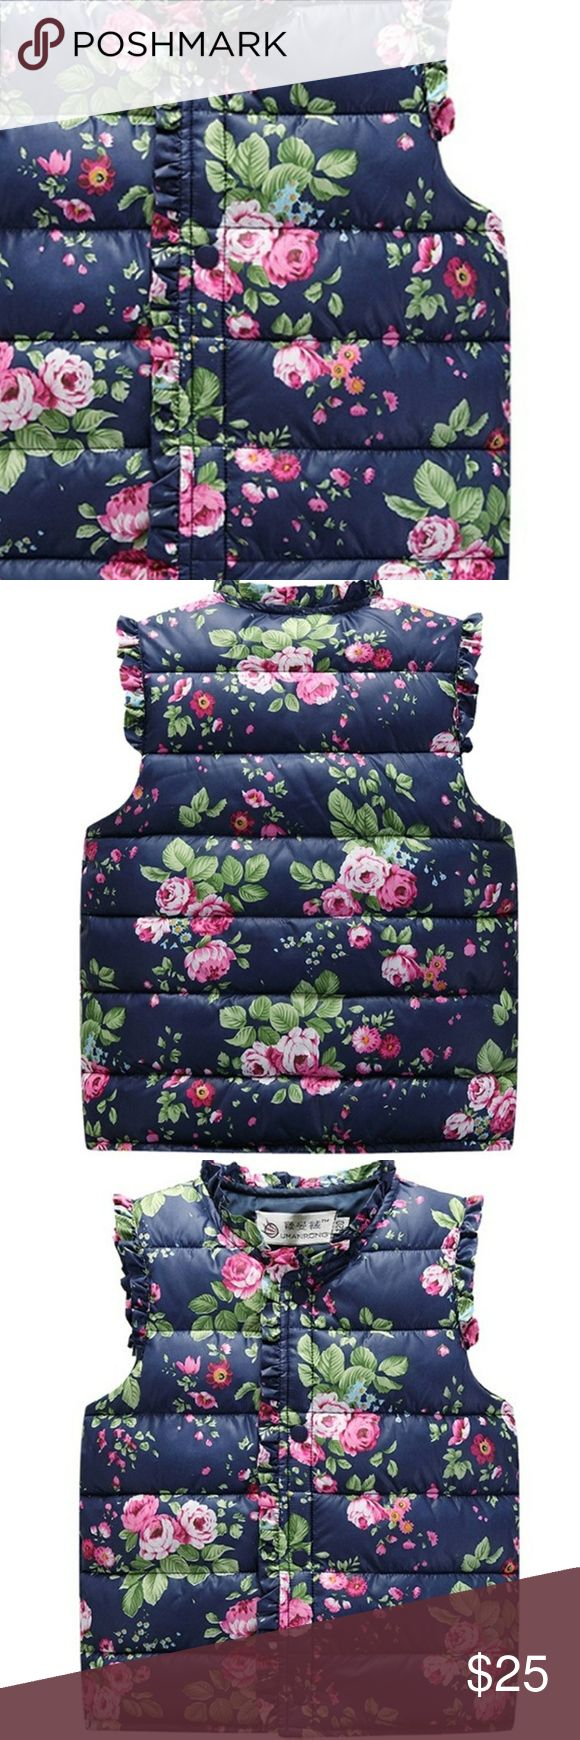 ️JUST IN️ GIRLS Puffer Floral Vest Cotton/poly floral vest.  Medium weight.  Available in 4T, 6, and 8. Jackets & Coats Vests